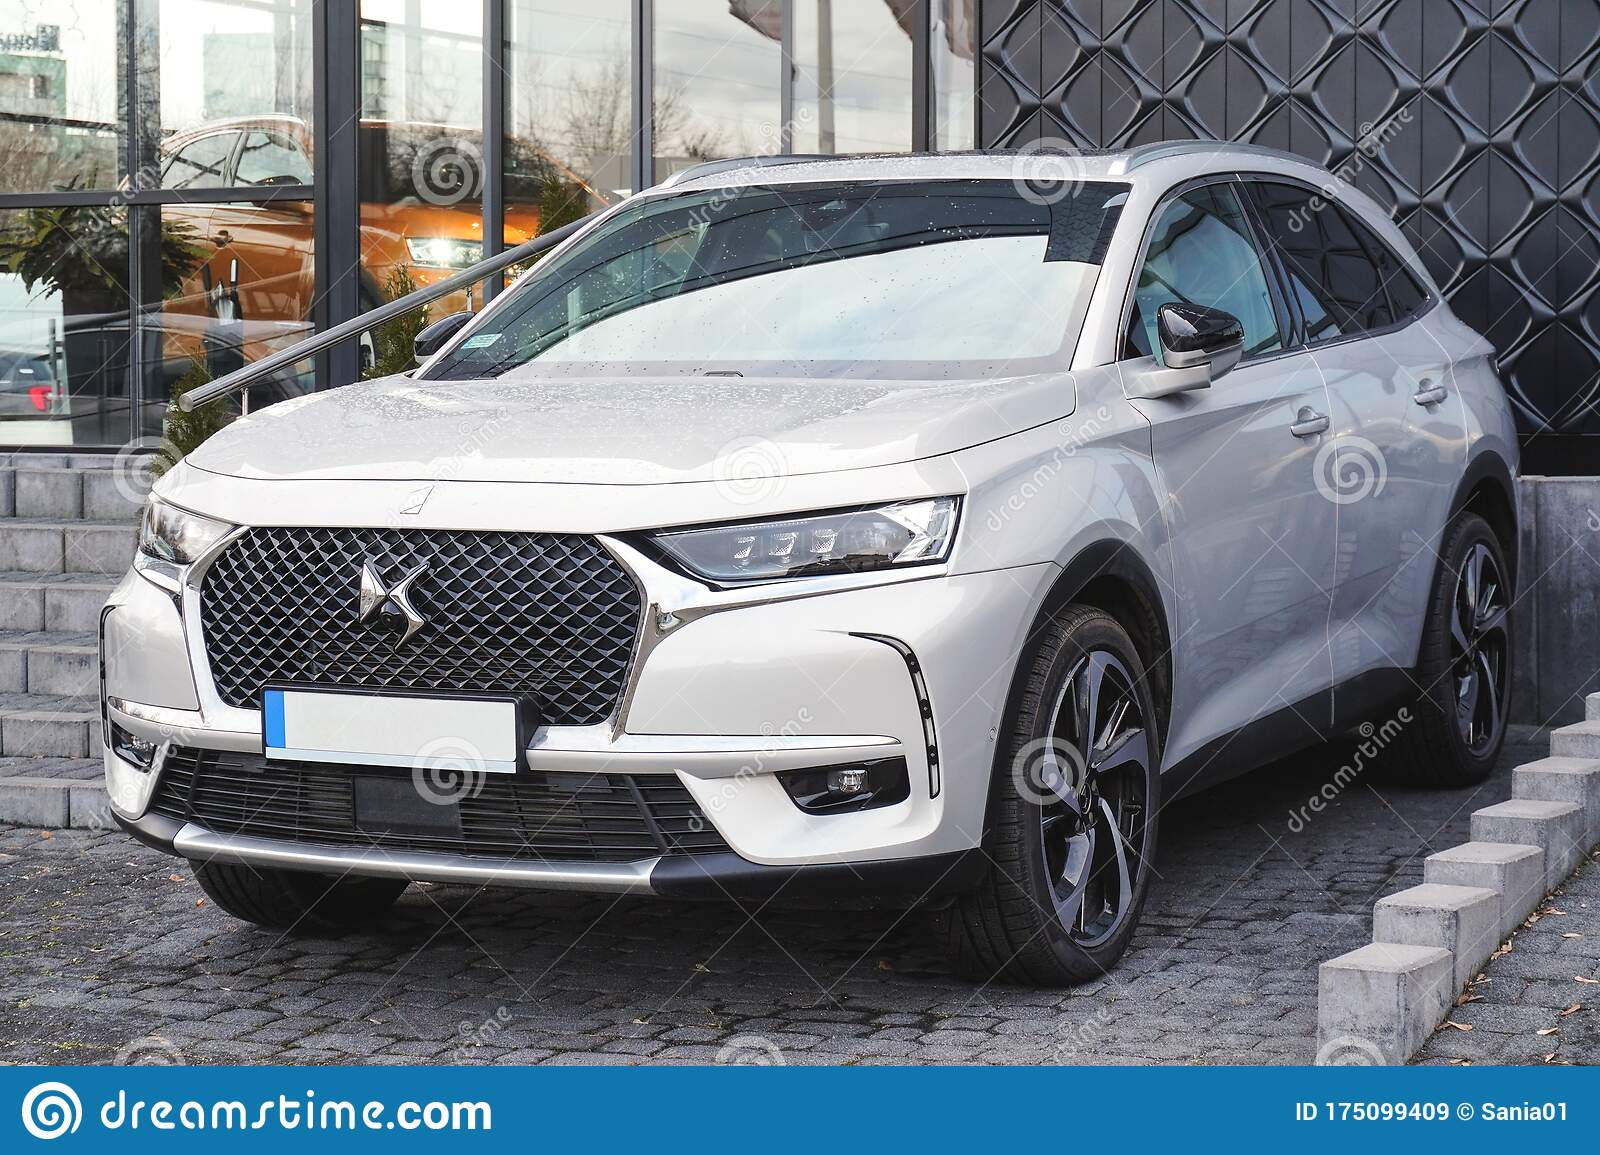 Krakow Poland 02 15 2020 Citroen Ds 7 Crossback French Suv Cars In The Parking Lot Of The Dealer Center Sales Of New Cars Editorial Stock Image Image Of Citroen Auto 175099409